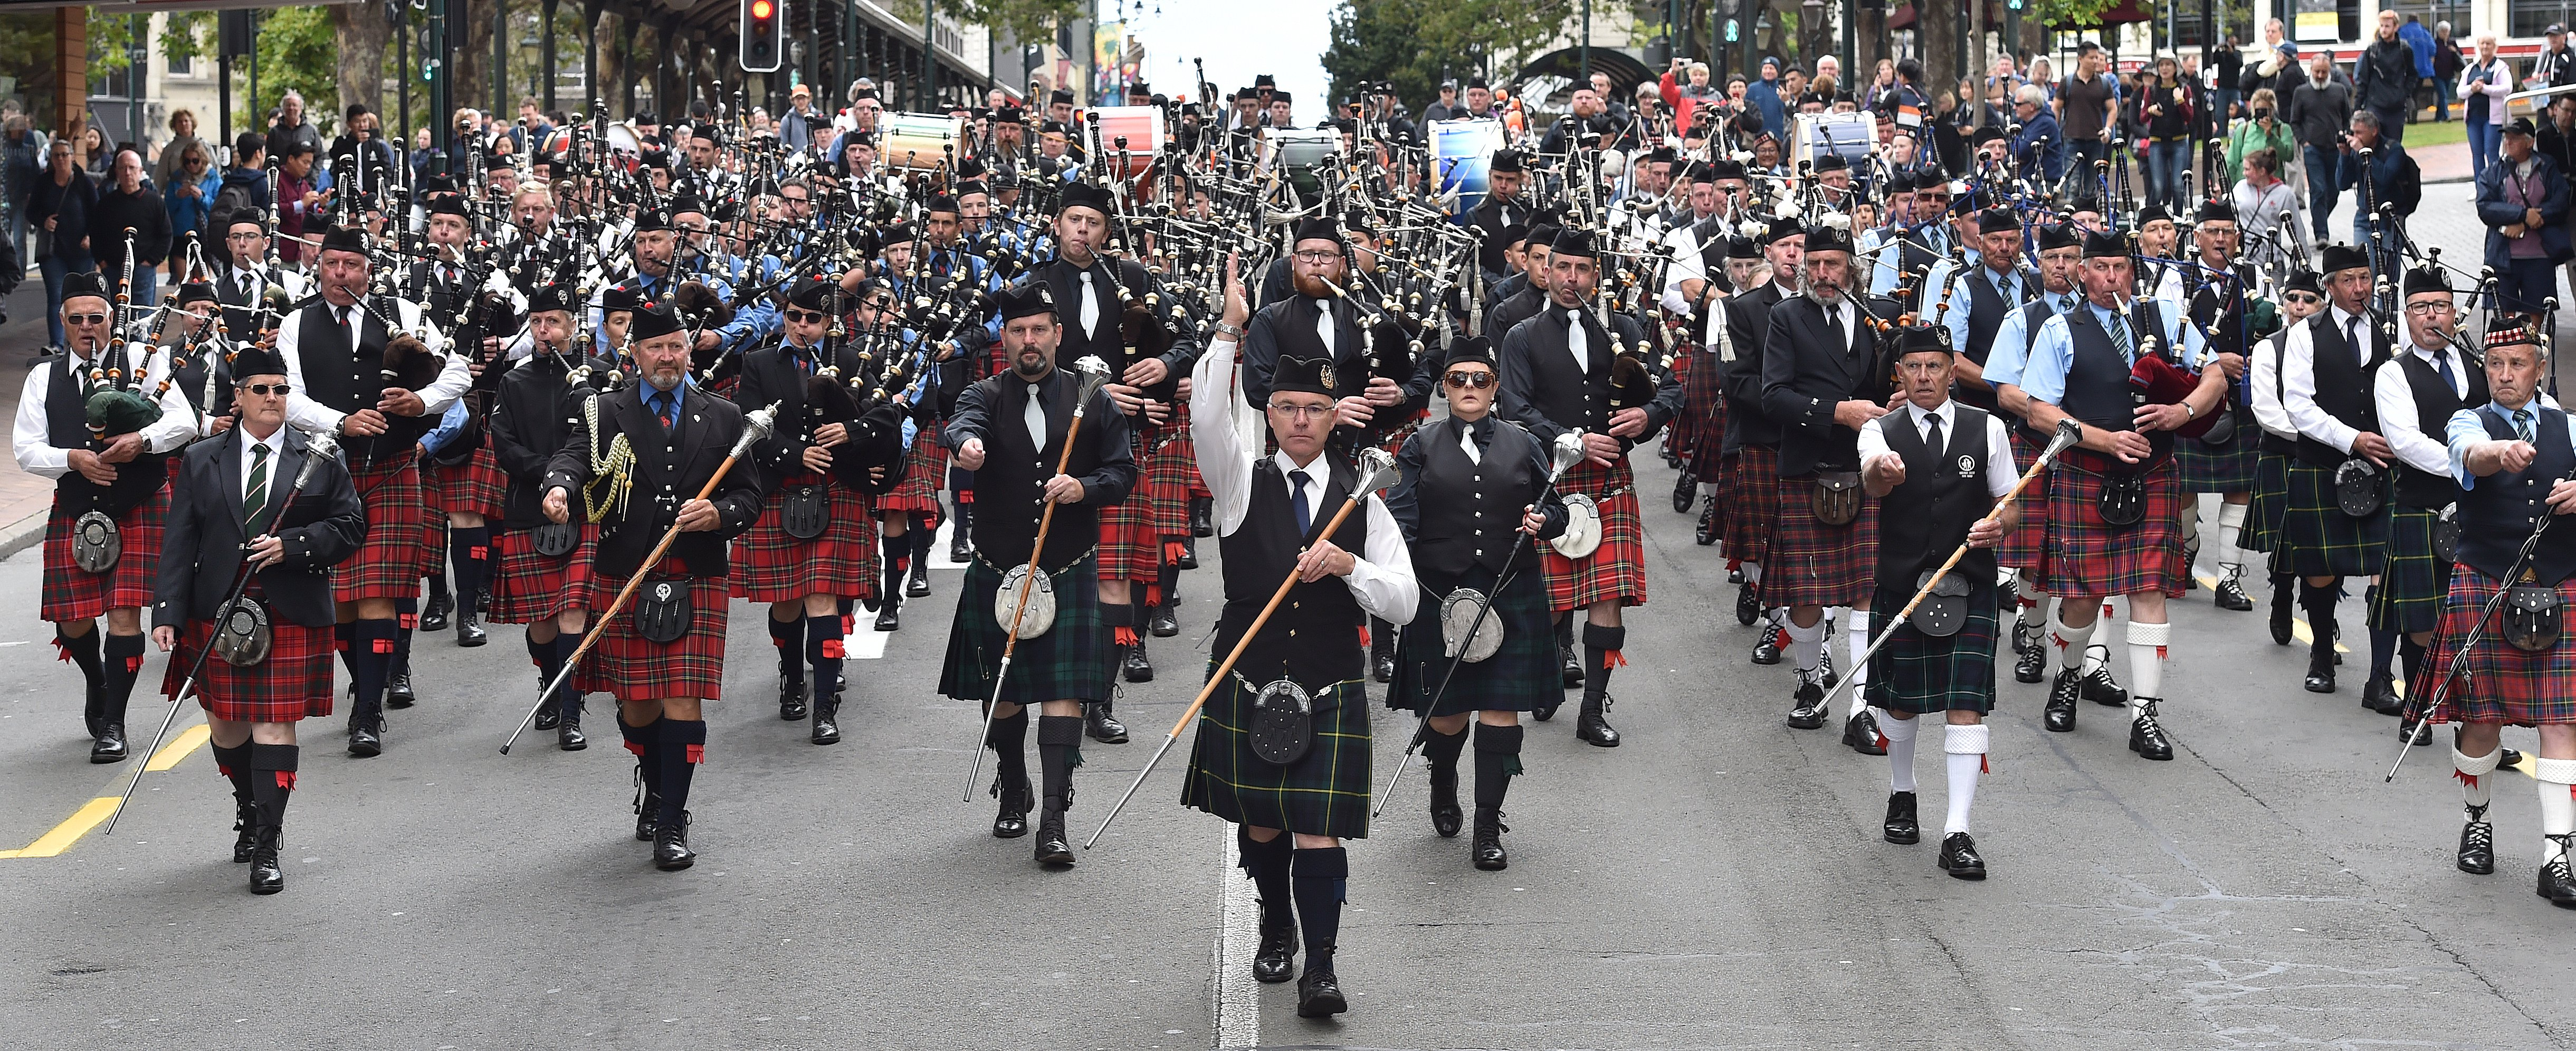 City of Dunedin Pipe Band drum major Andrew McLellan leads a mass parade of pipe band members...